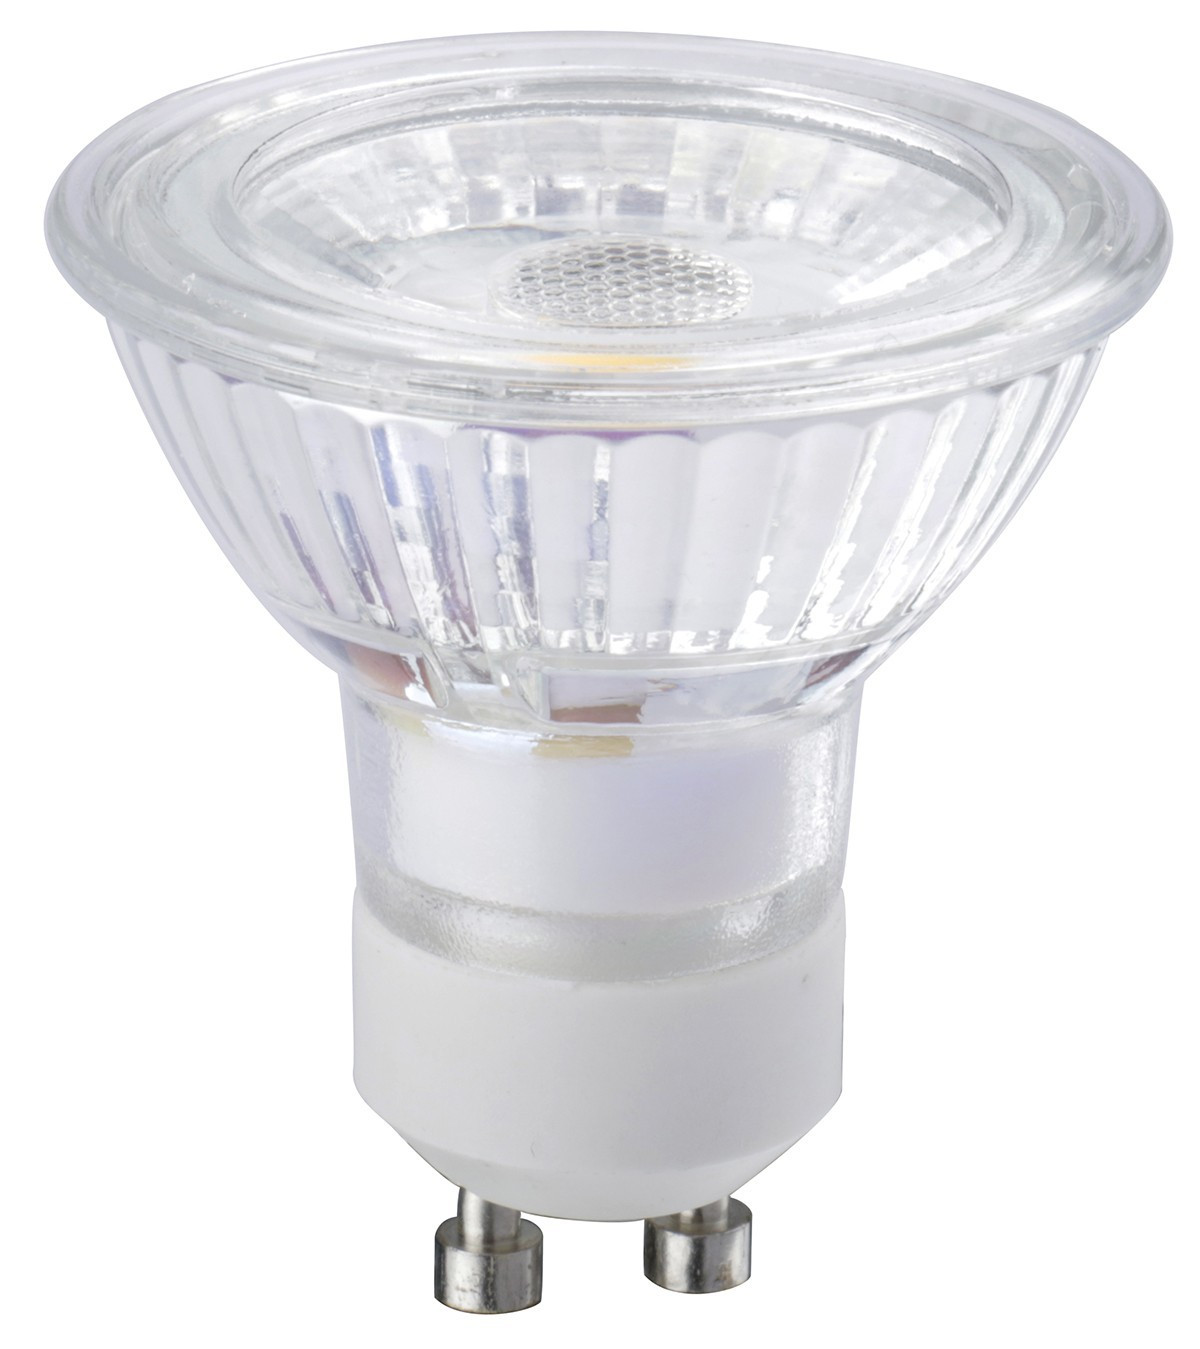 Led Gu10 5w Landlite Led Gu10 5w Cob Warmwhite 2700k Led Lamp